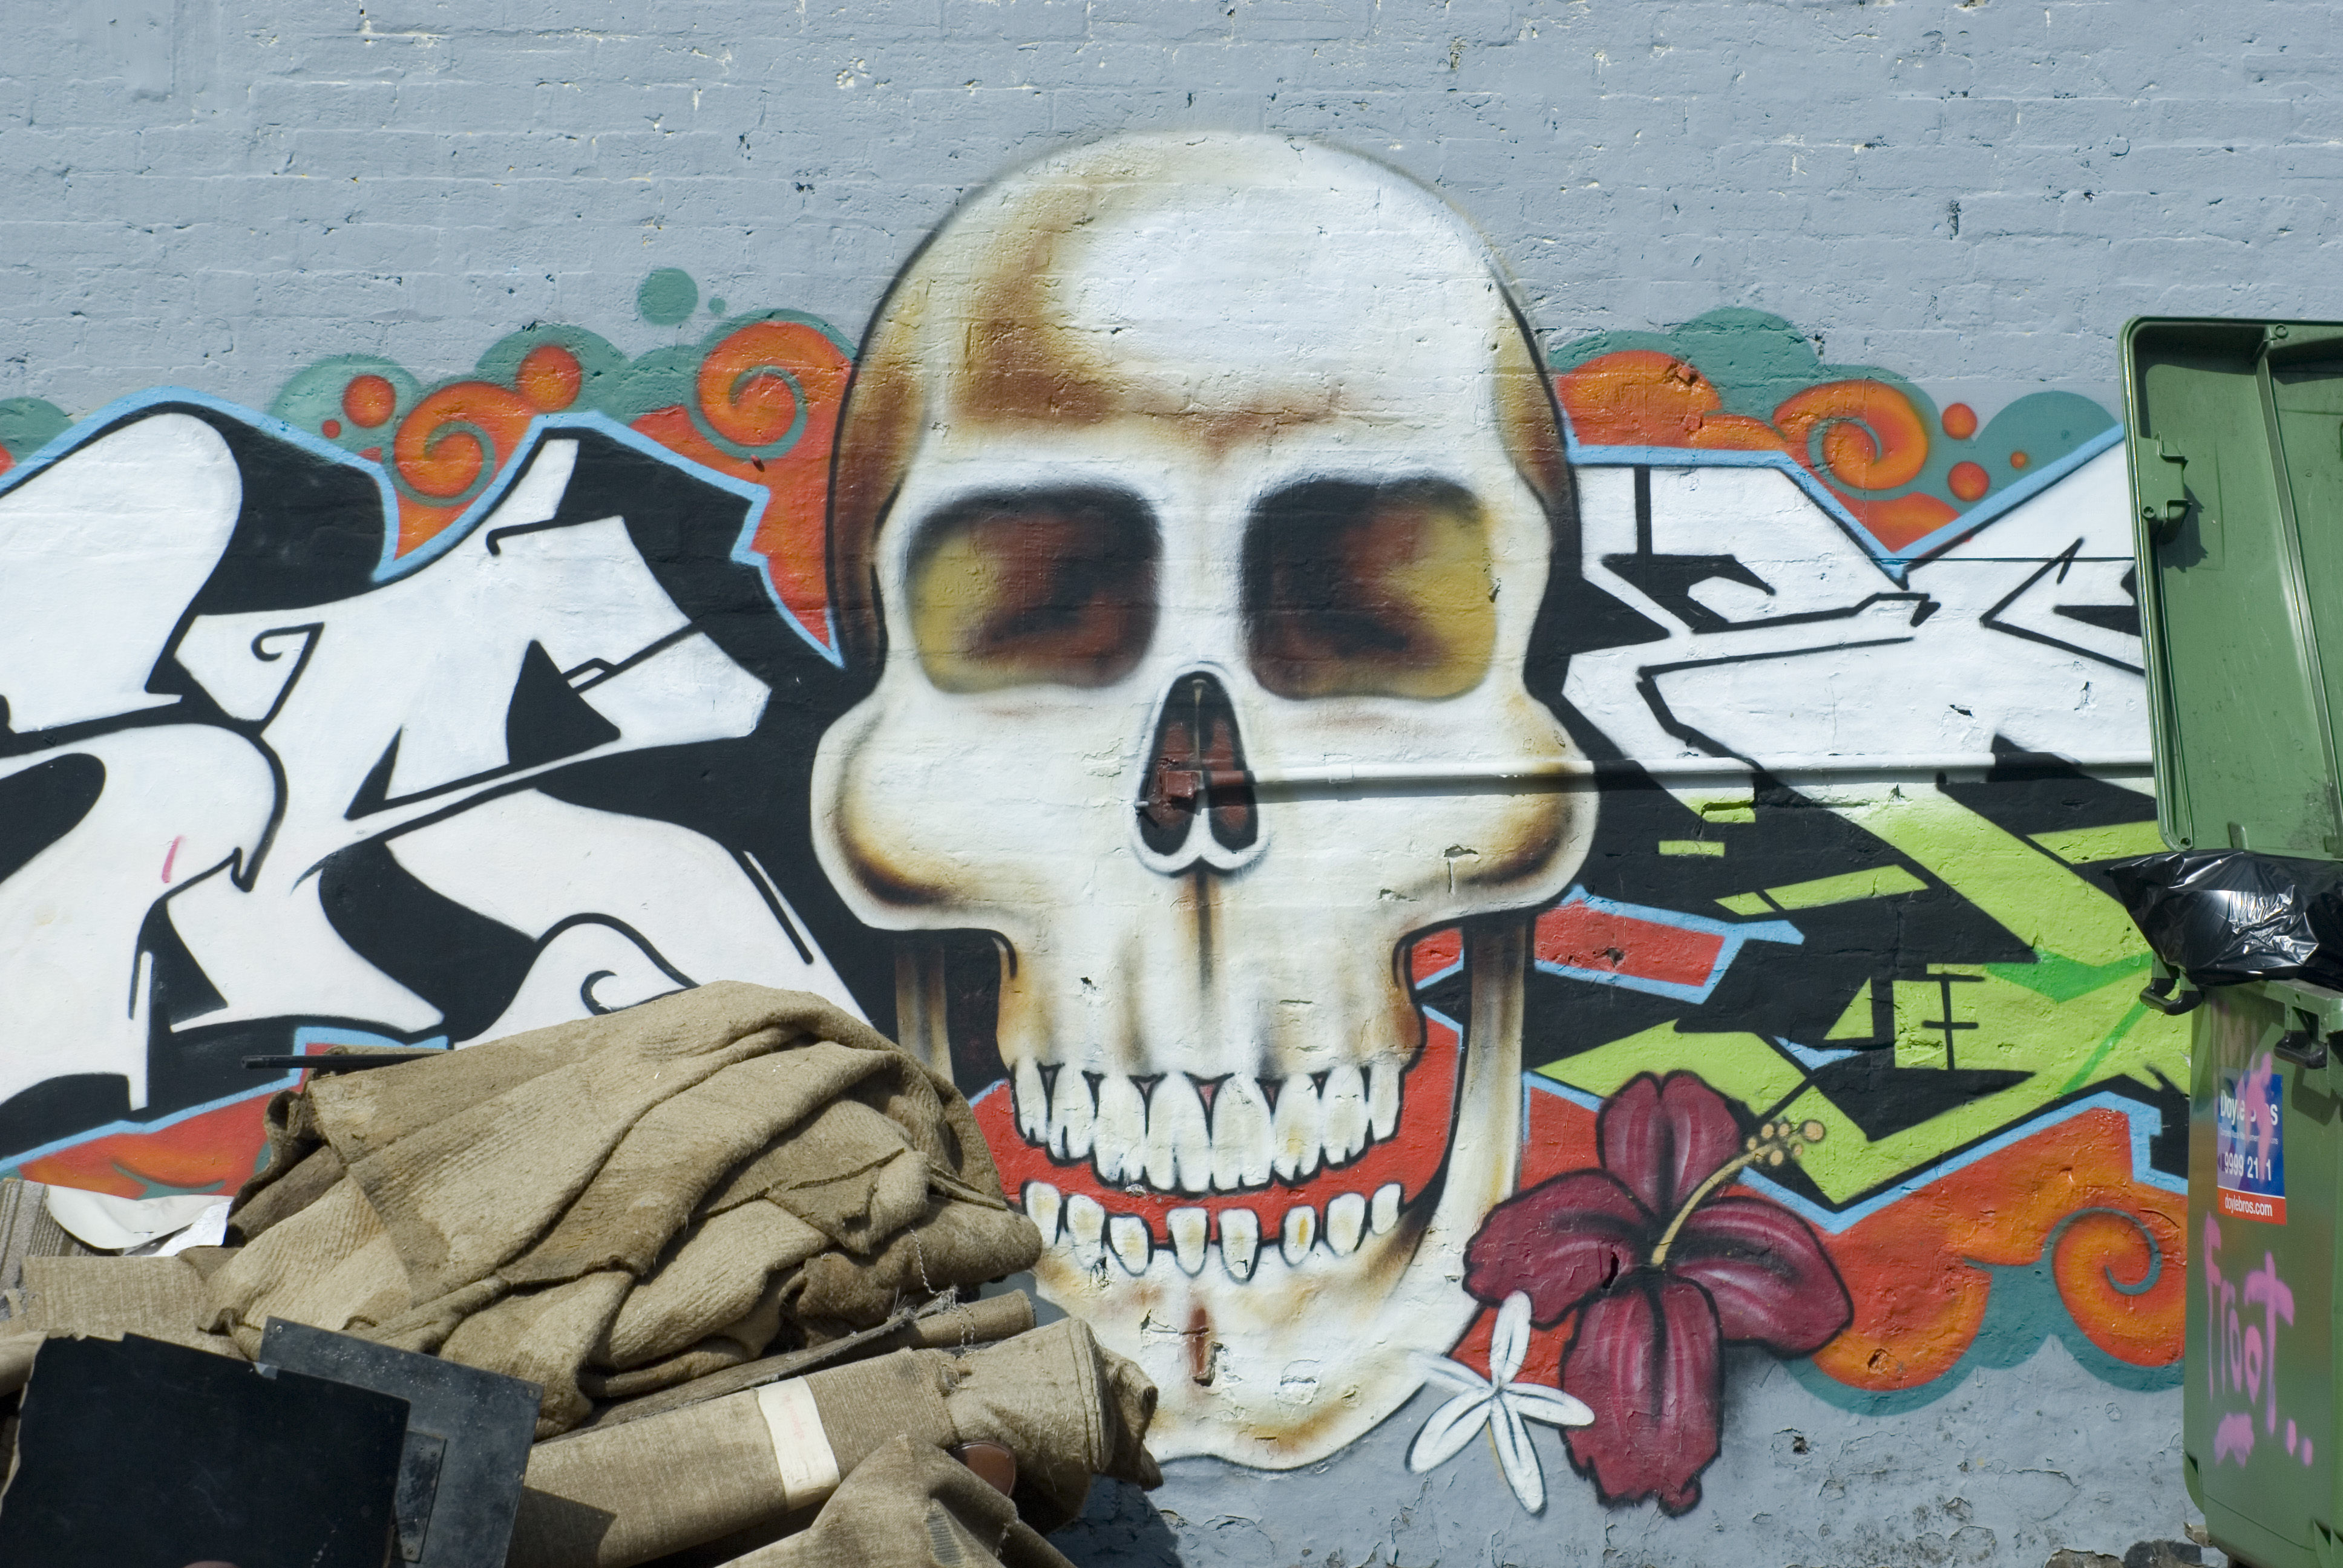 a wall covered in graffiti with a skull motif